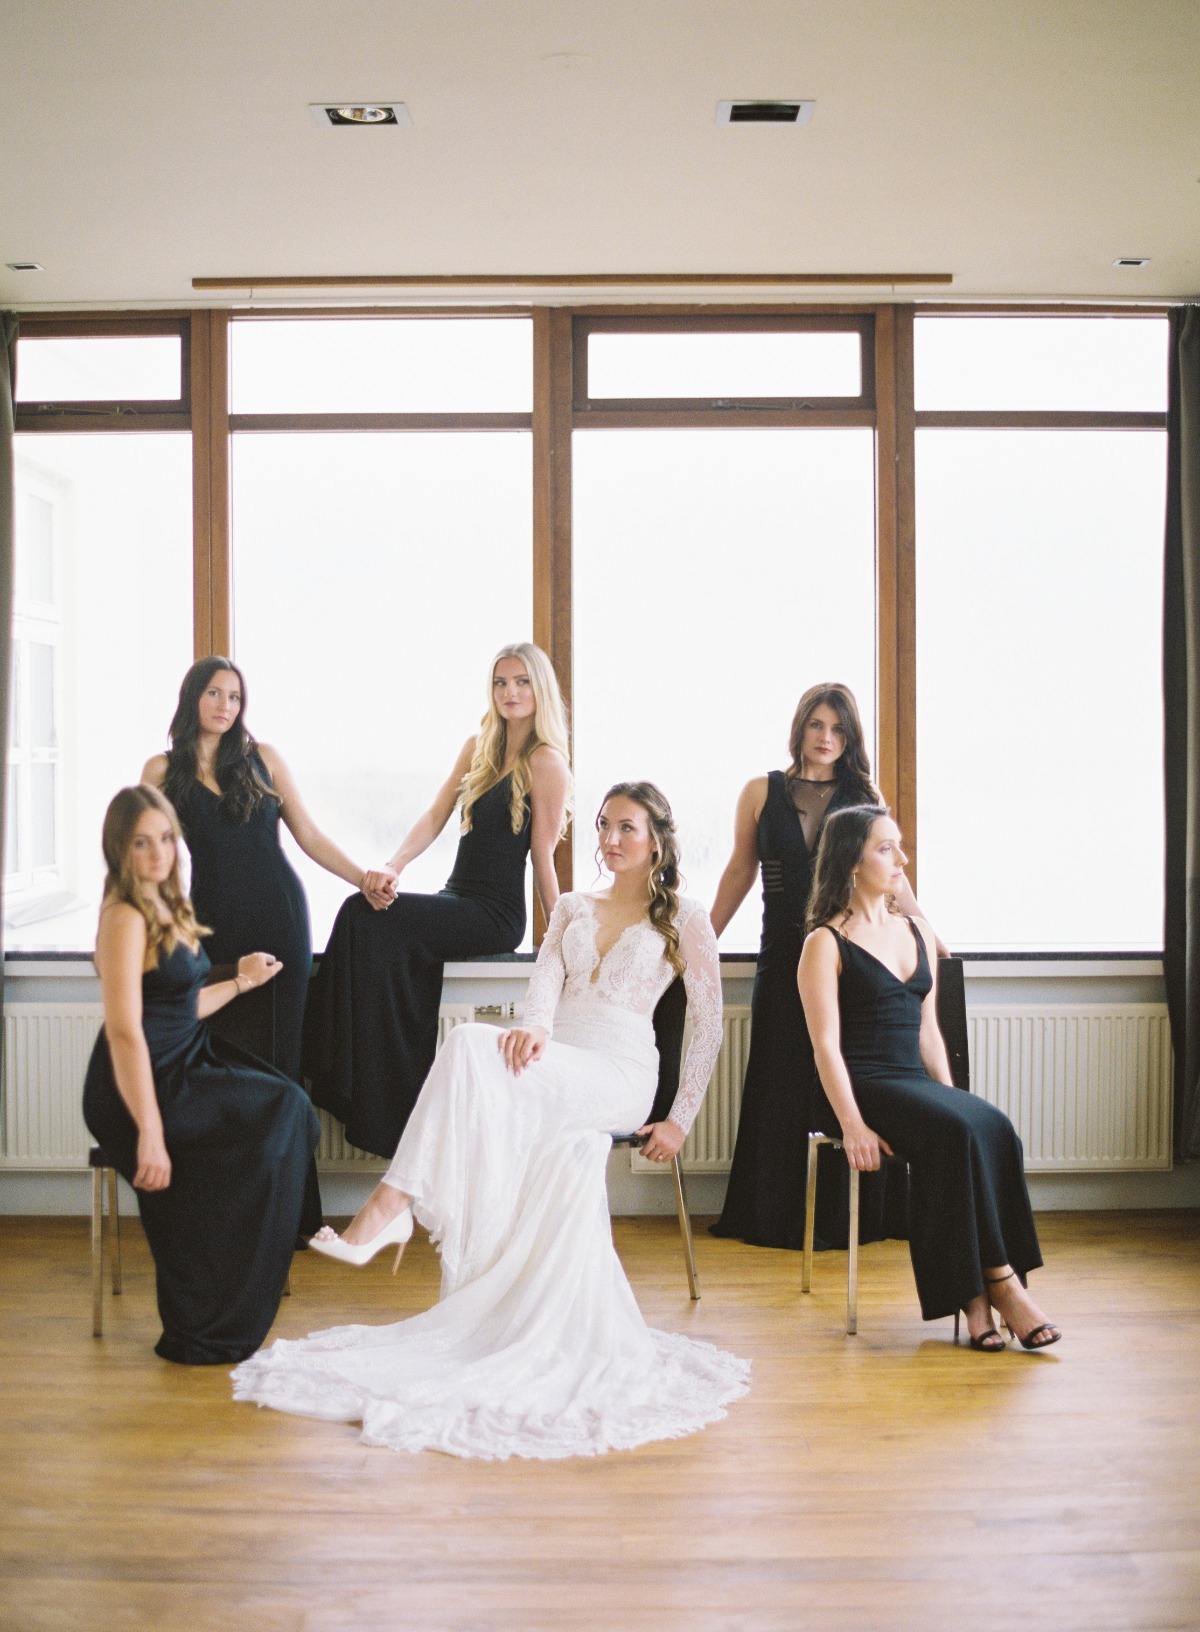 Bridesmaids in floor length black dresses